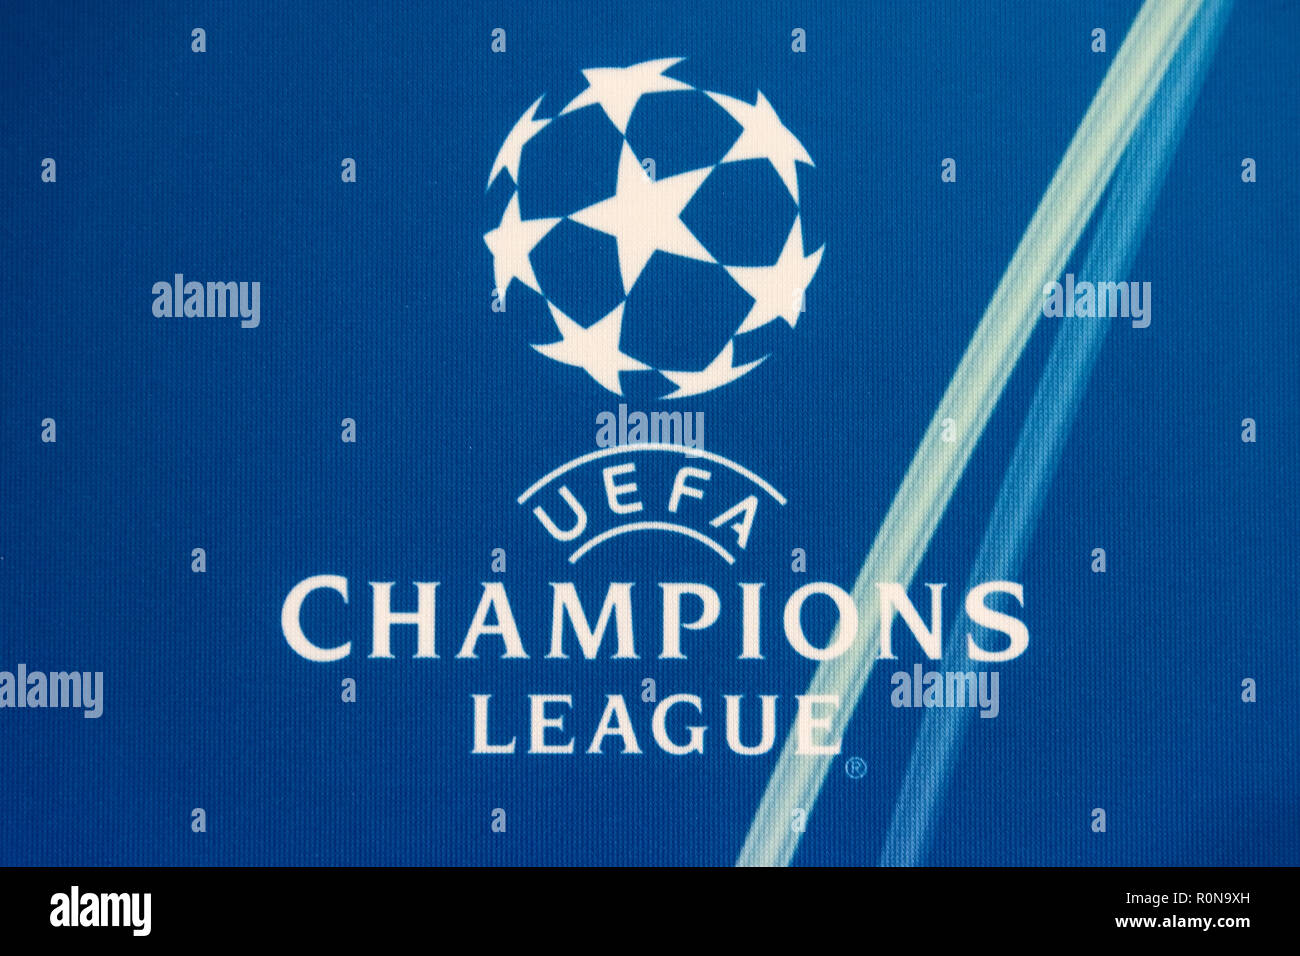 champions league logo high resolution stock photography and images alamy https www alamy com thessaloniki greece august 28 2018 official uefa champions league logo image224203577 html